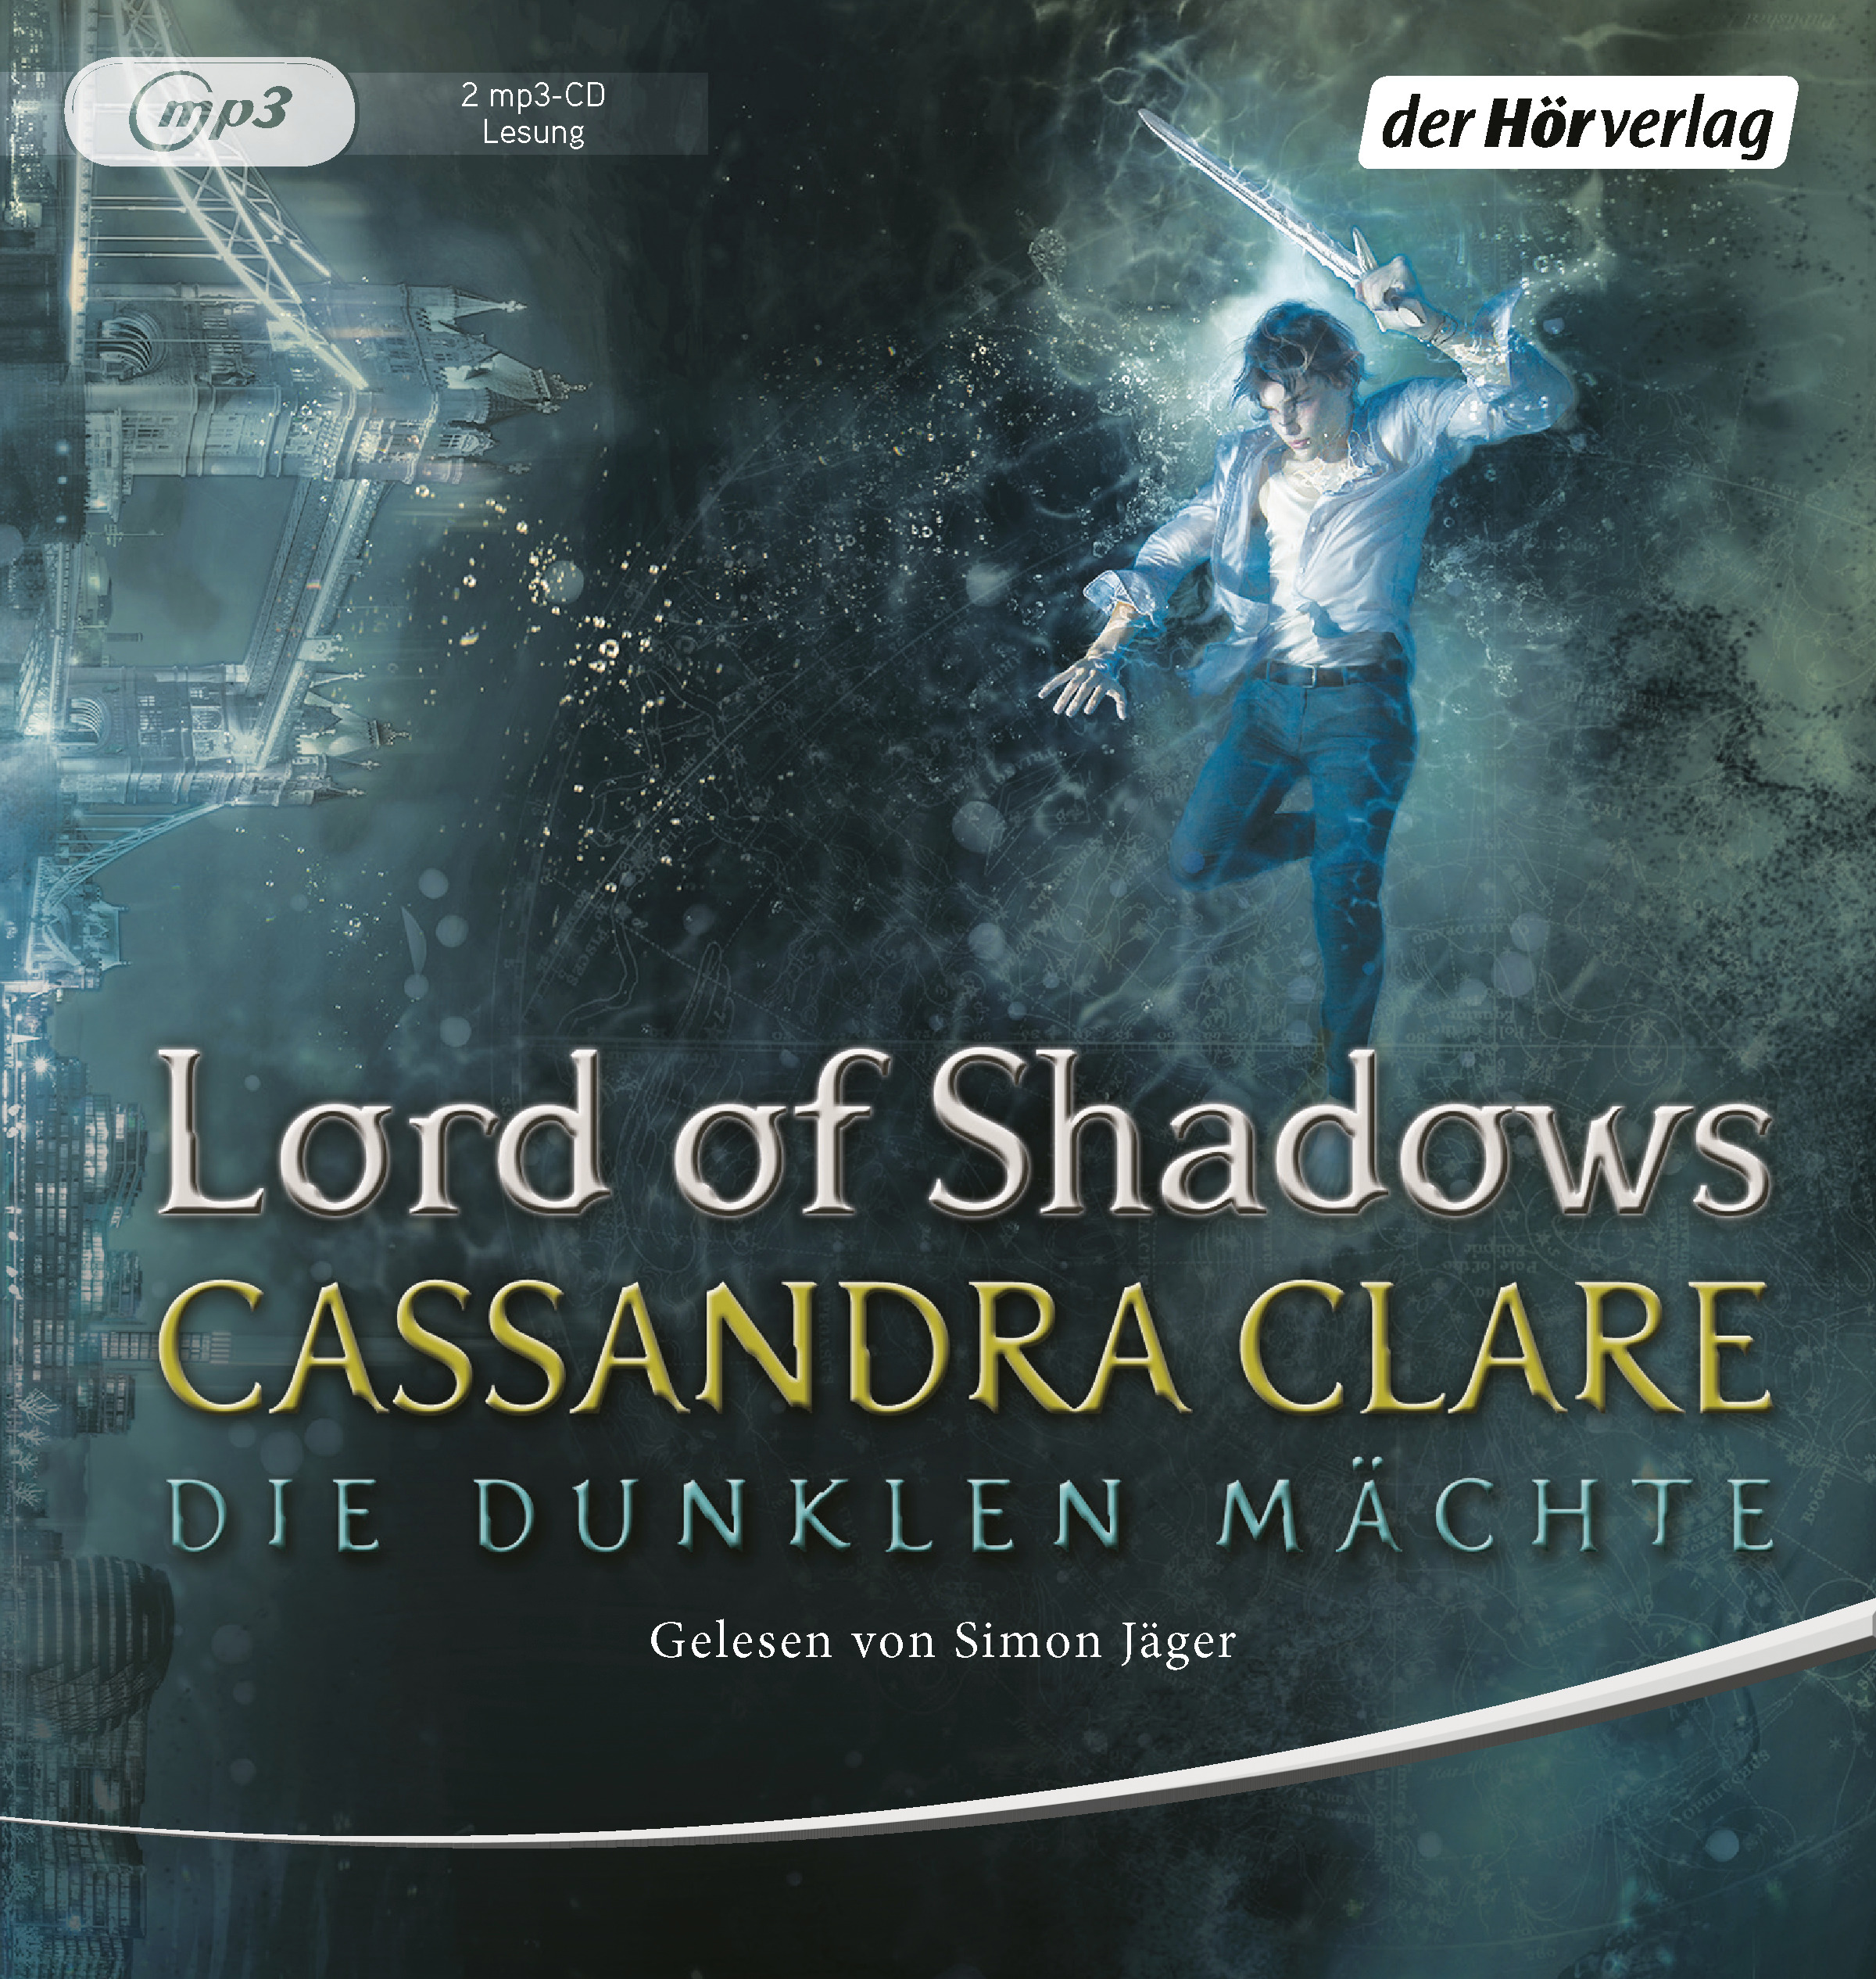 https://www.randomhouse.de/content/edition/covervoila_hires/Clare_CLord_of_Shadows_2_2MP3_180256.jpg